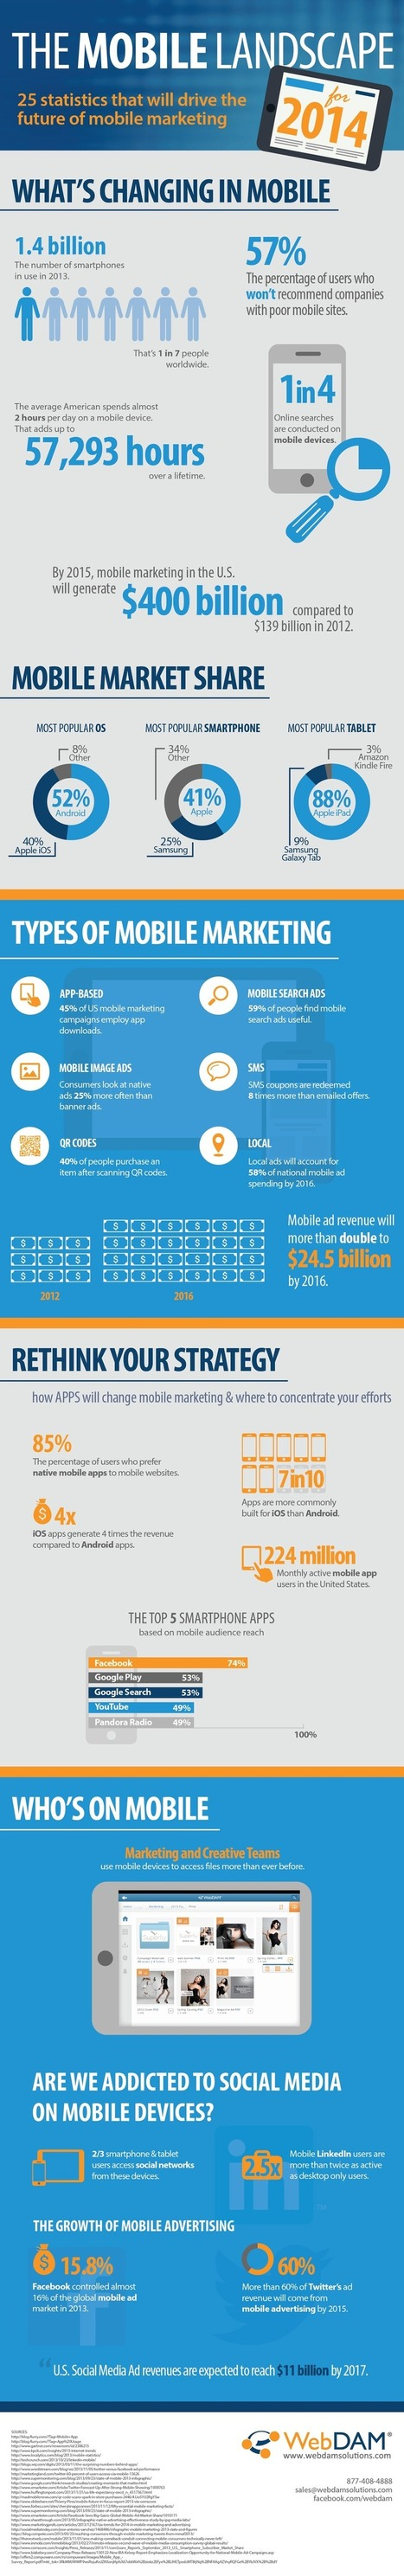 The mobile landscape for 2014 and beyond (Infographic) | MarketingHits | Scoop.it